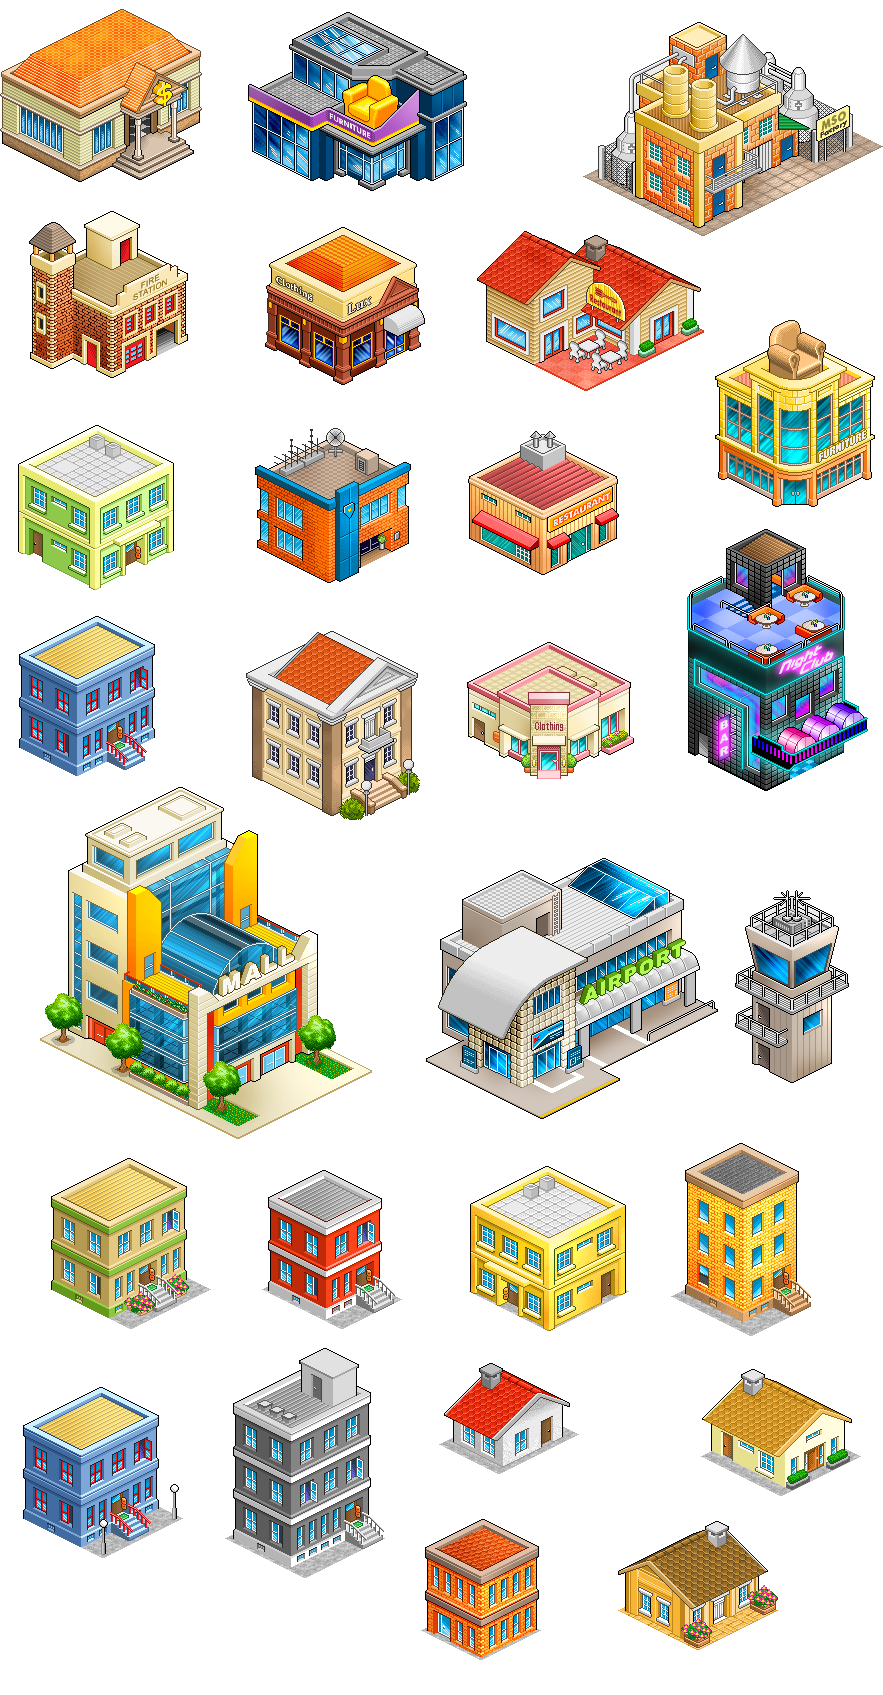 Mys Buildings1 Png 883 1 695 Pixels Isometric Art Game Concept Art Isometric Drawing